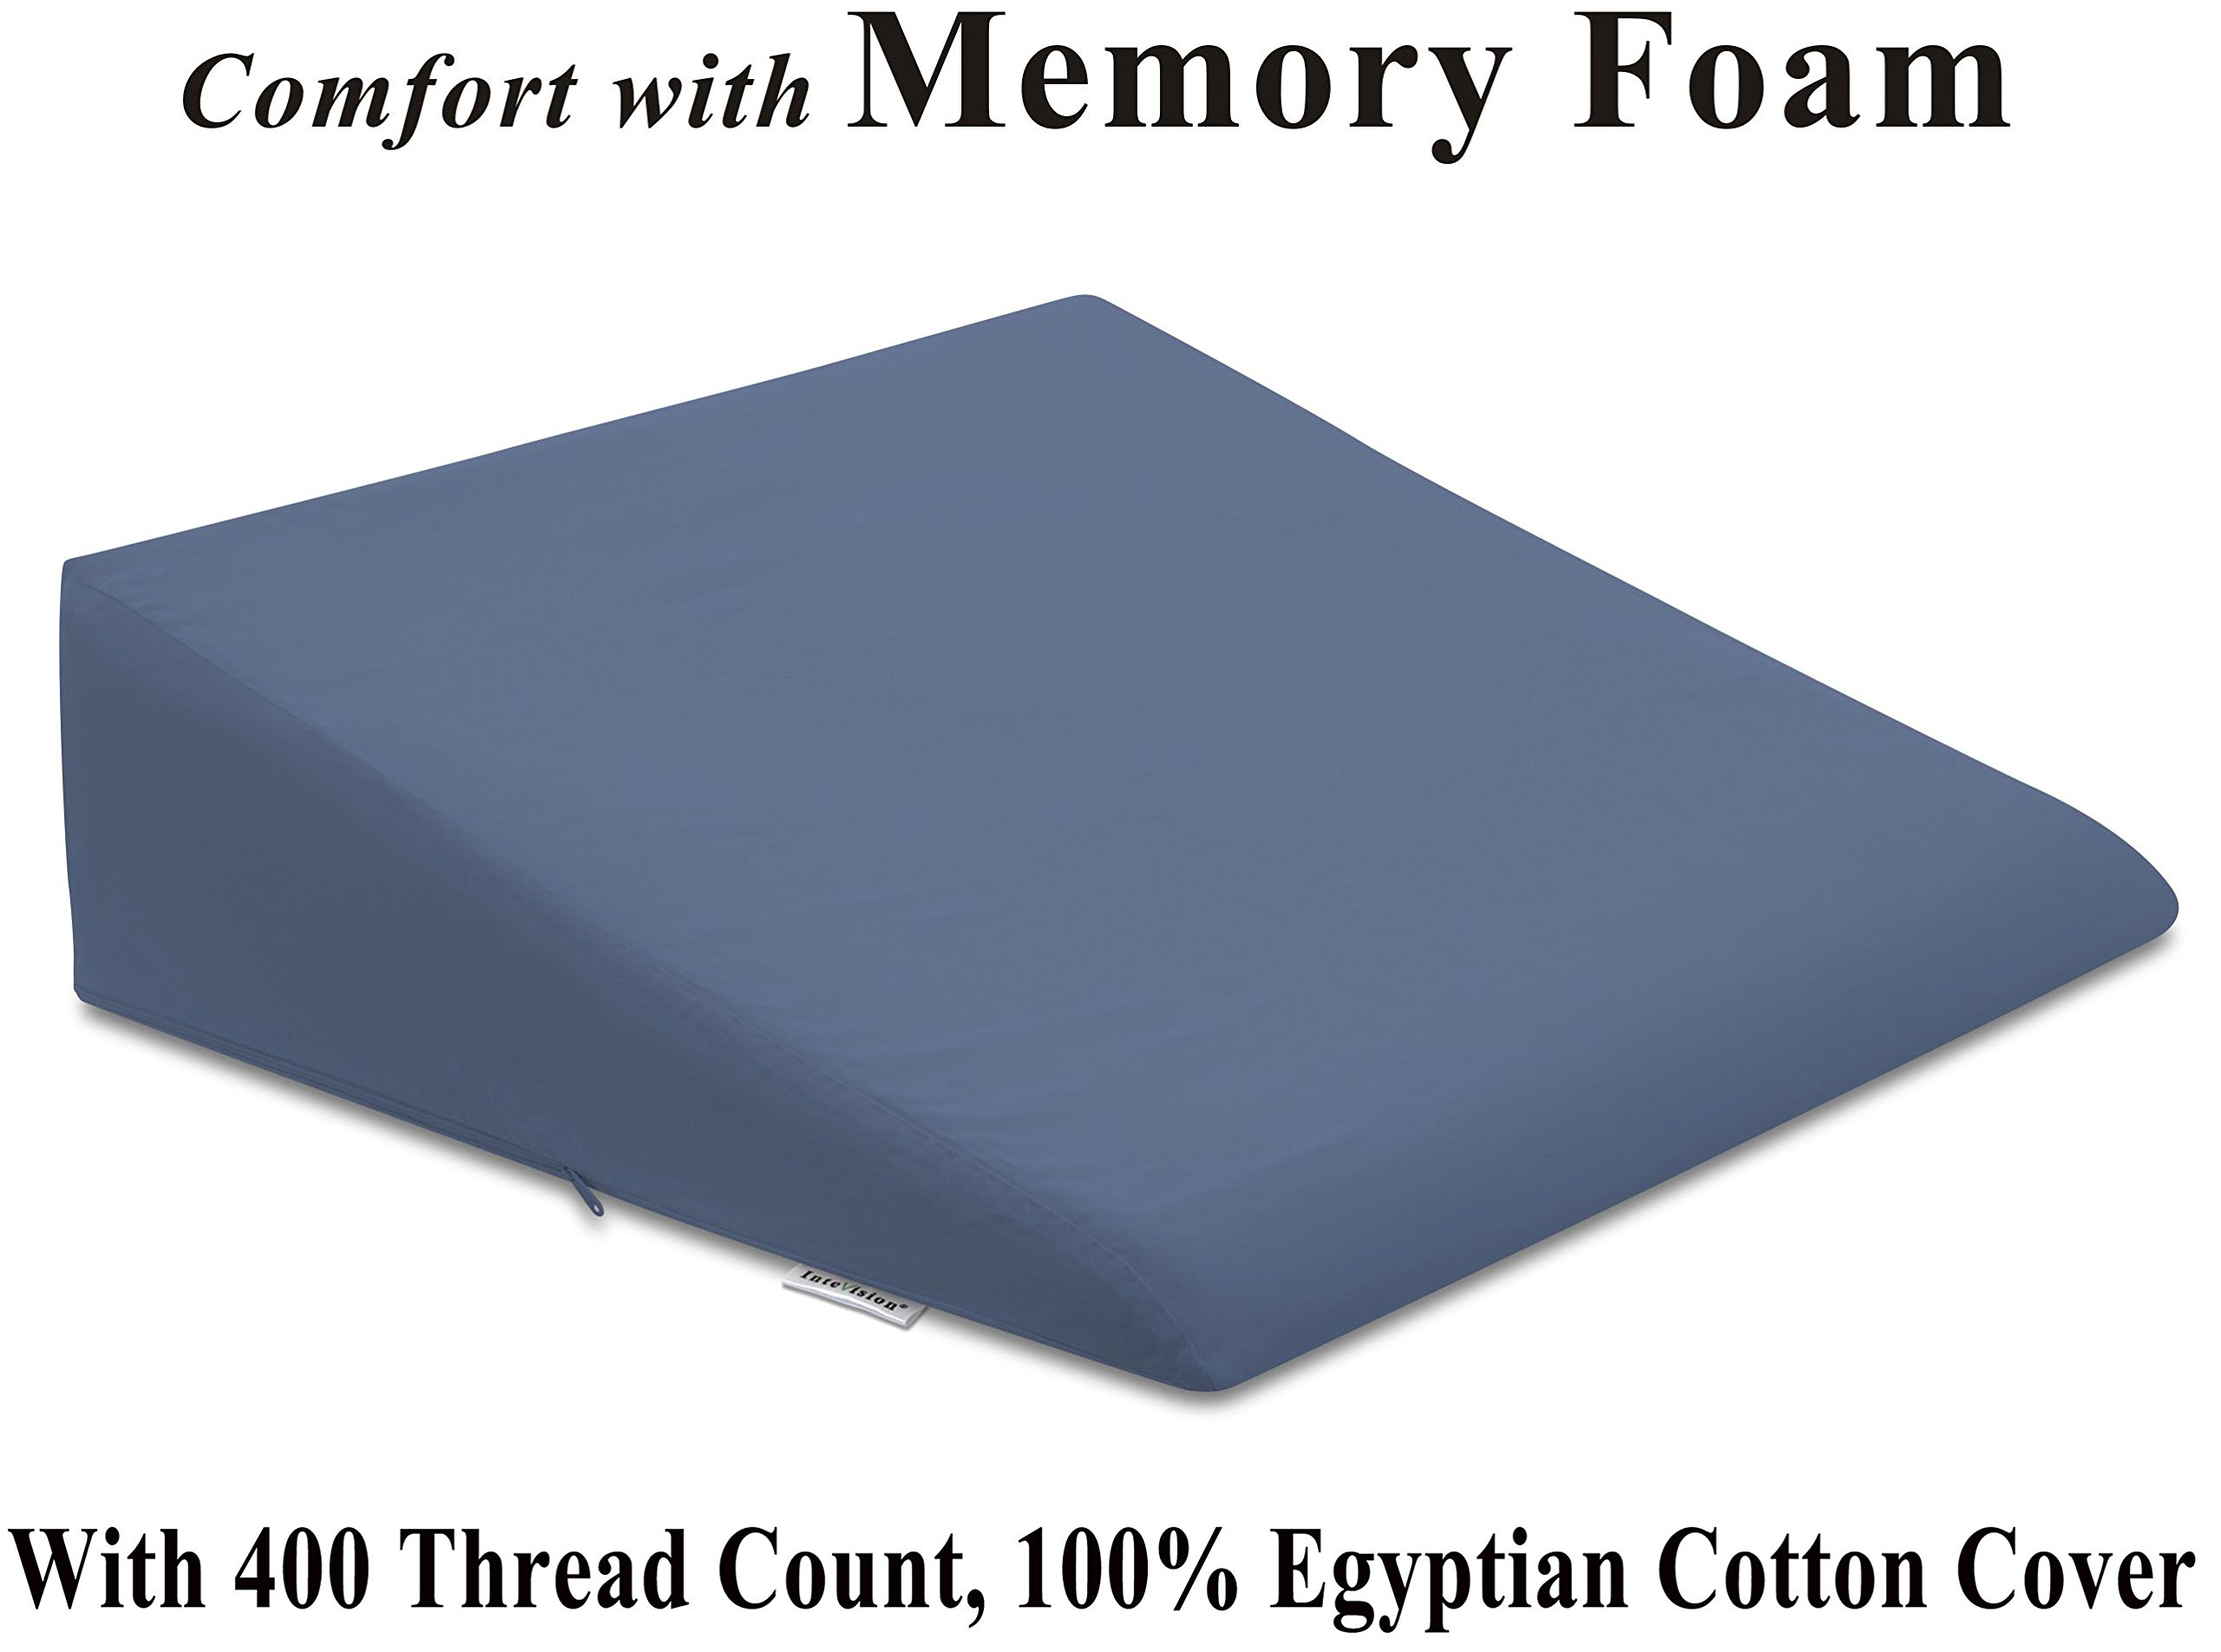 InteVision Foam Wedge Bed Pillow (26'' x 25'' x 7.5'') with High Quality, 400 thread count, 100% Egyptian Cotton Cover